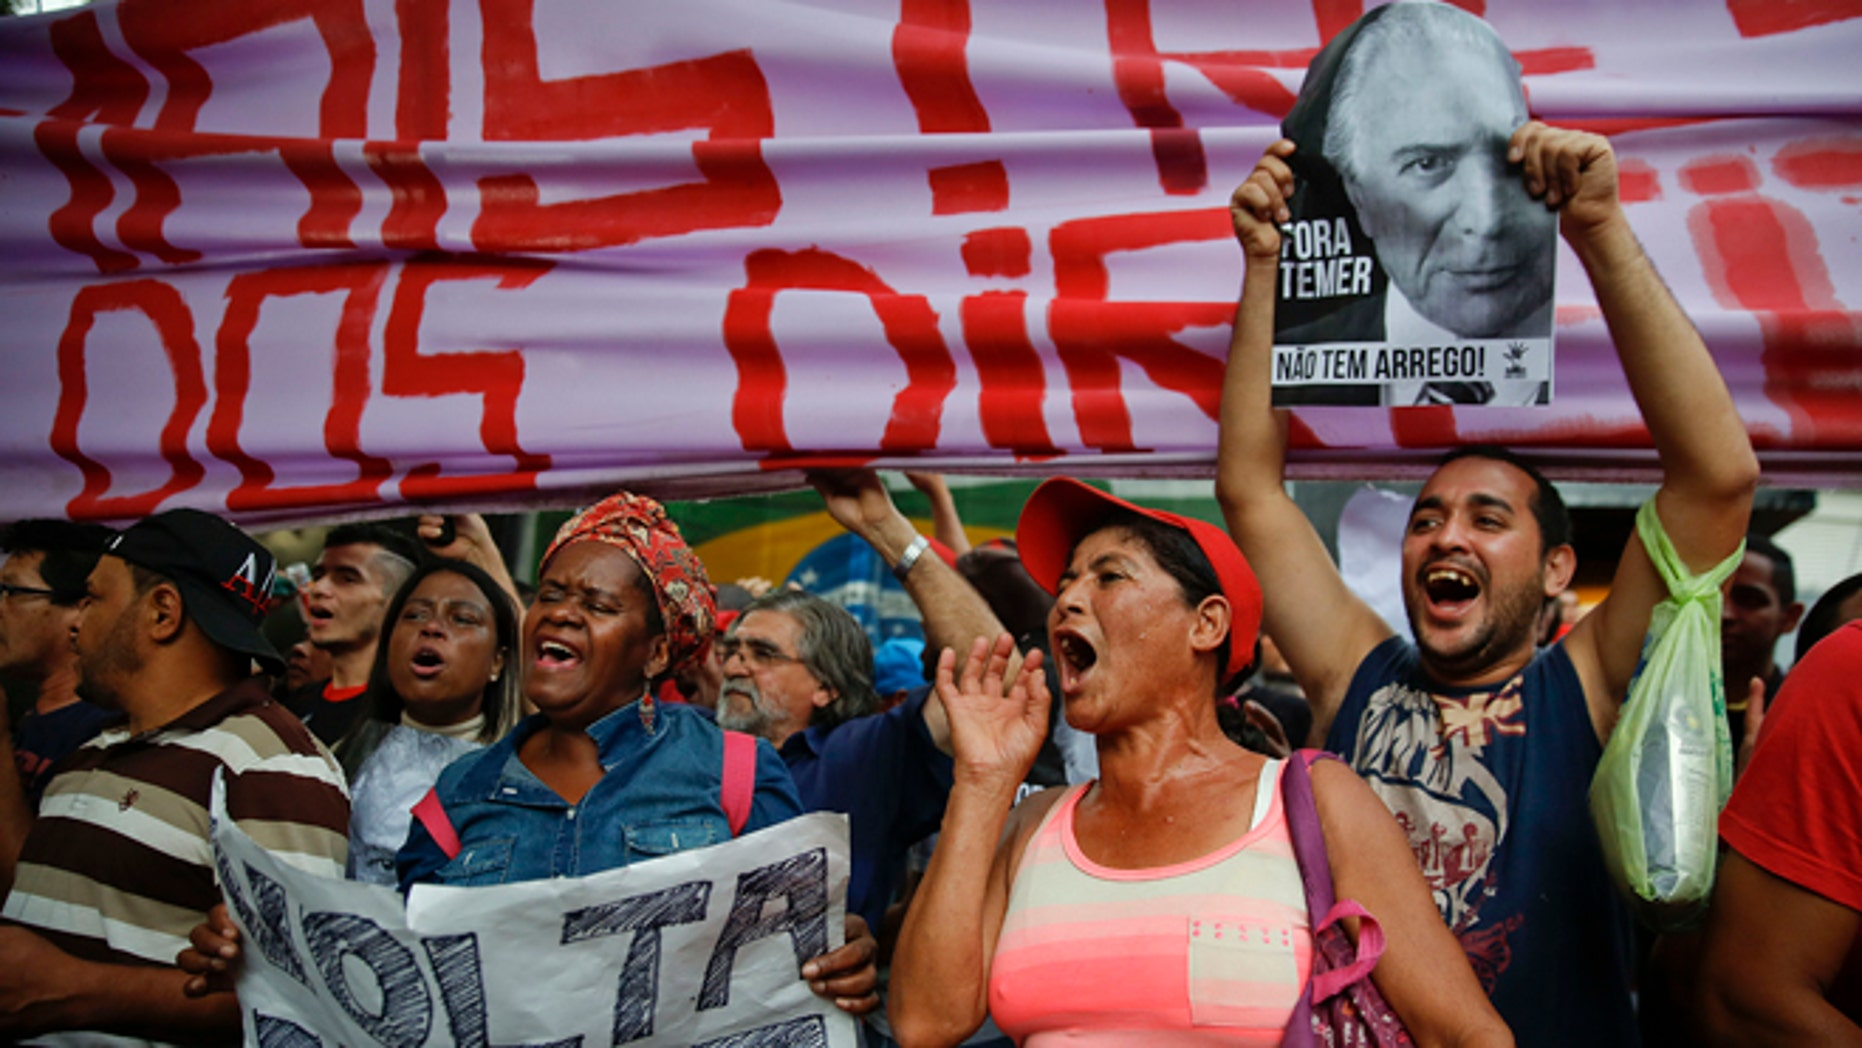 """With signs that read in Portuguese """"Dilma come back"""" and """"Temer Out,"""" demonstrators shout slogans during a protest against Brazil's acting President Michel Temer and in support of Brazil's suspended President Dilma Rousseff, close to Temer's residence in São Paulo, Brazil, Sunday, May 22, 2016. Temer took office after Rousseff was suspended for up to 180 days while the Senate holds an impeachment trial. (AP Photo/Andre Penner)"""